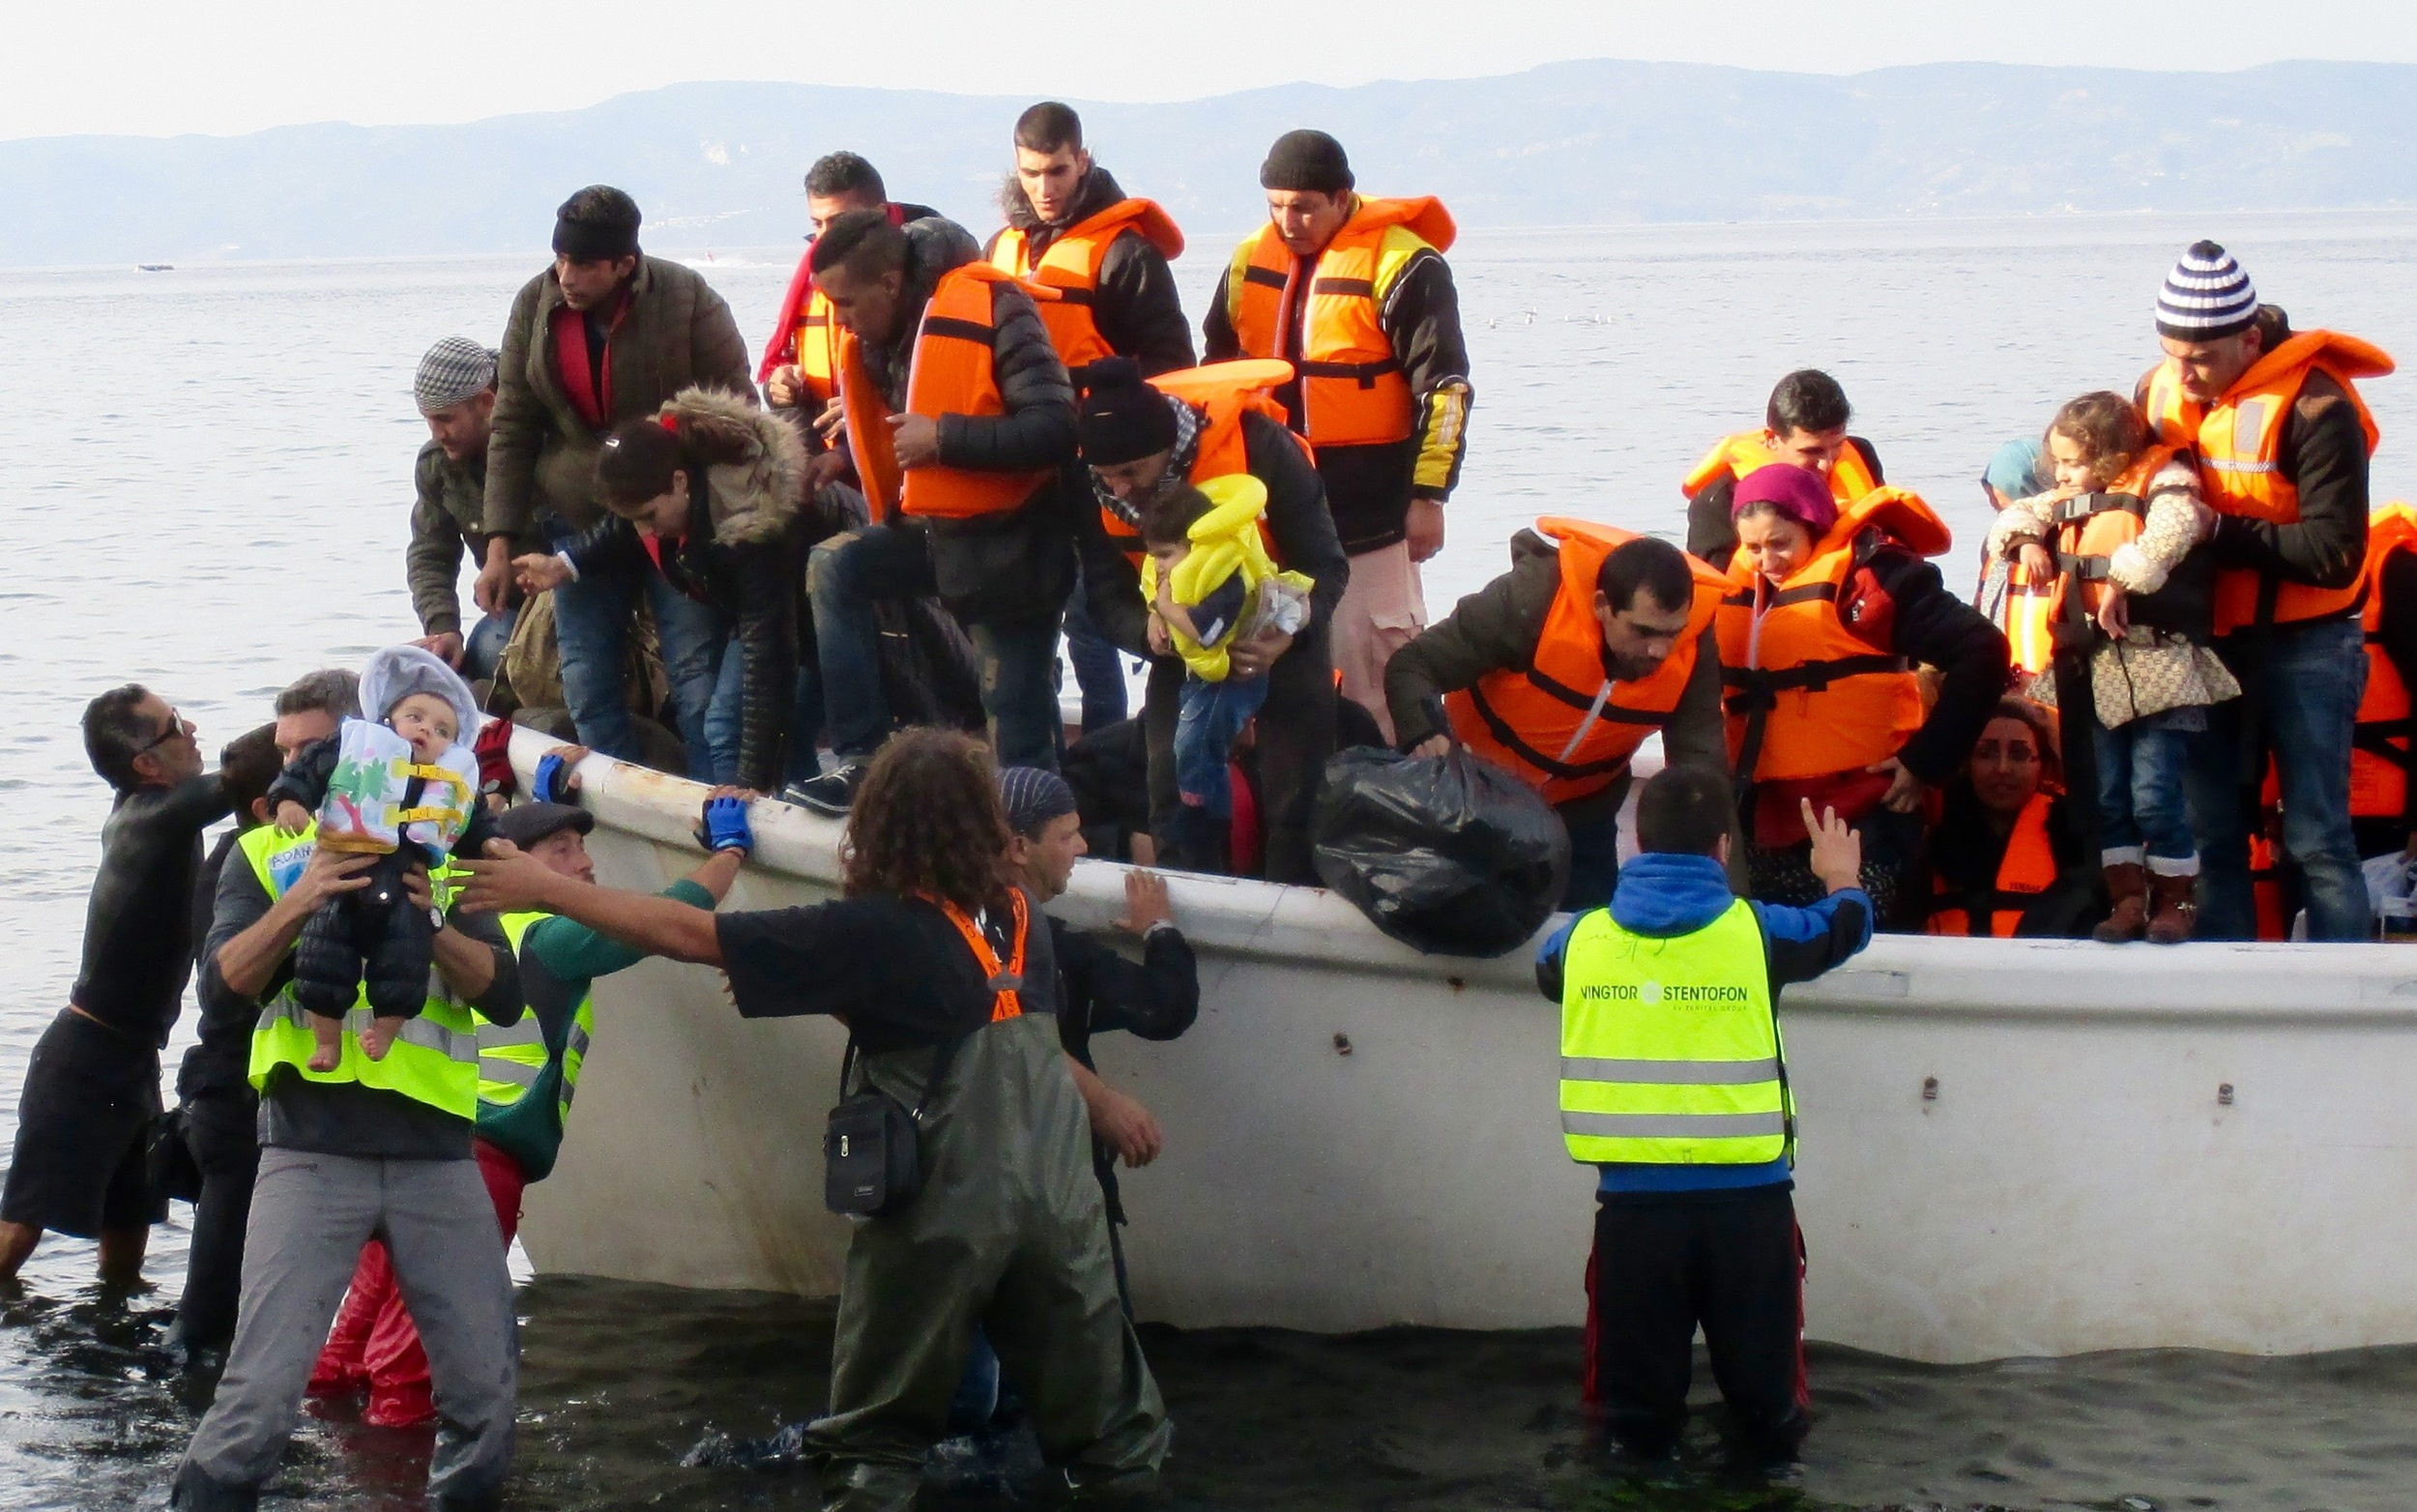 Arriving in a coastguard boat that rescued them from their sinking dinghy, children are offloaded first by a variety of different volunteers organizations acting as first responders on the shore.